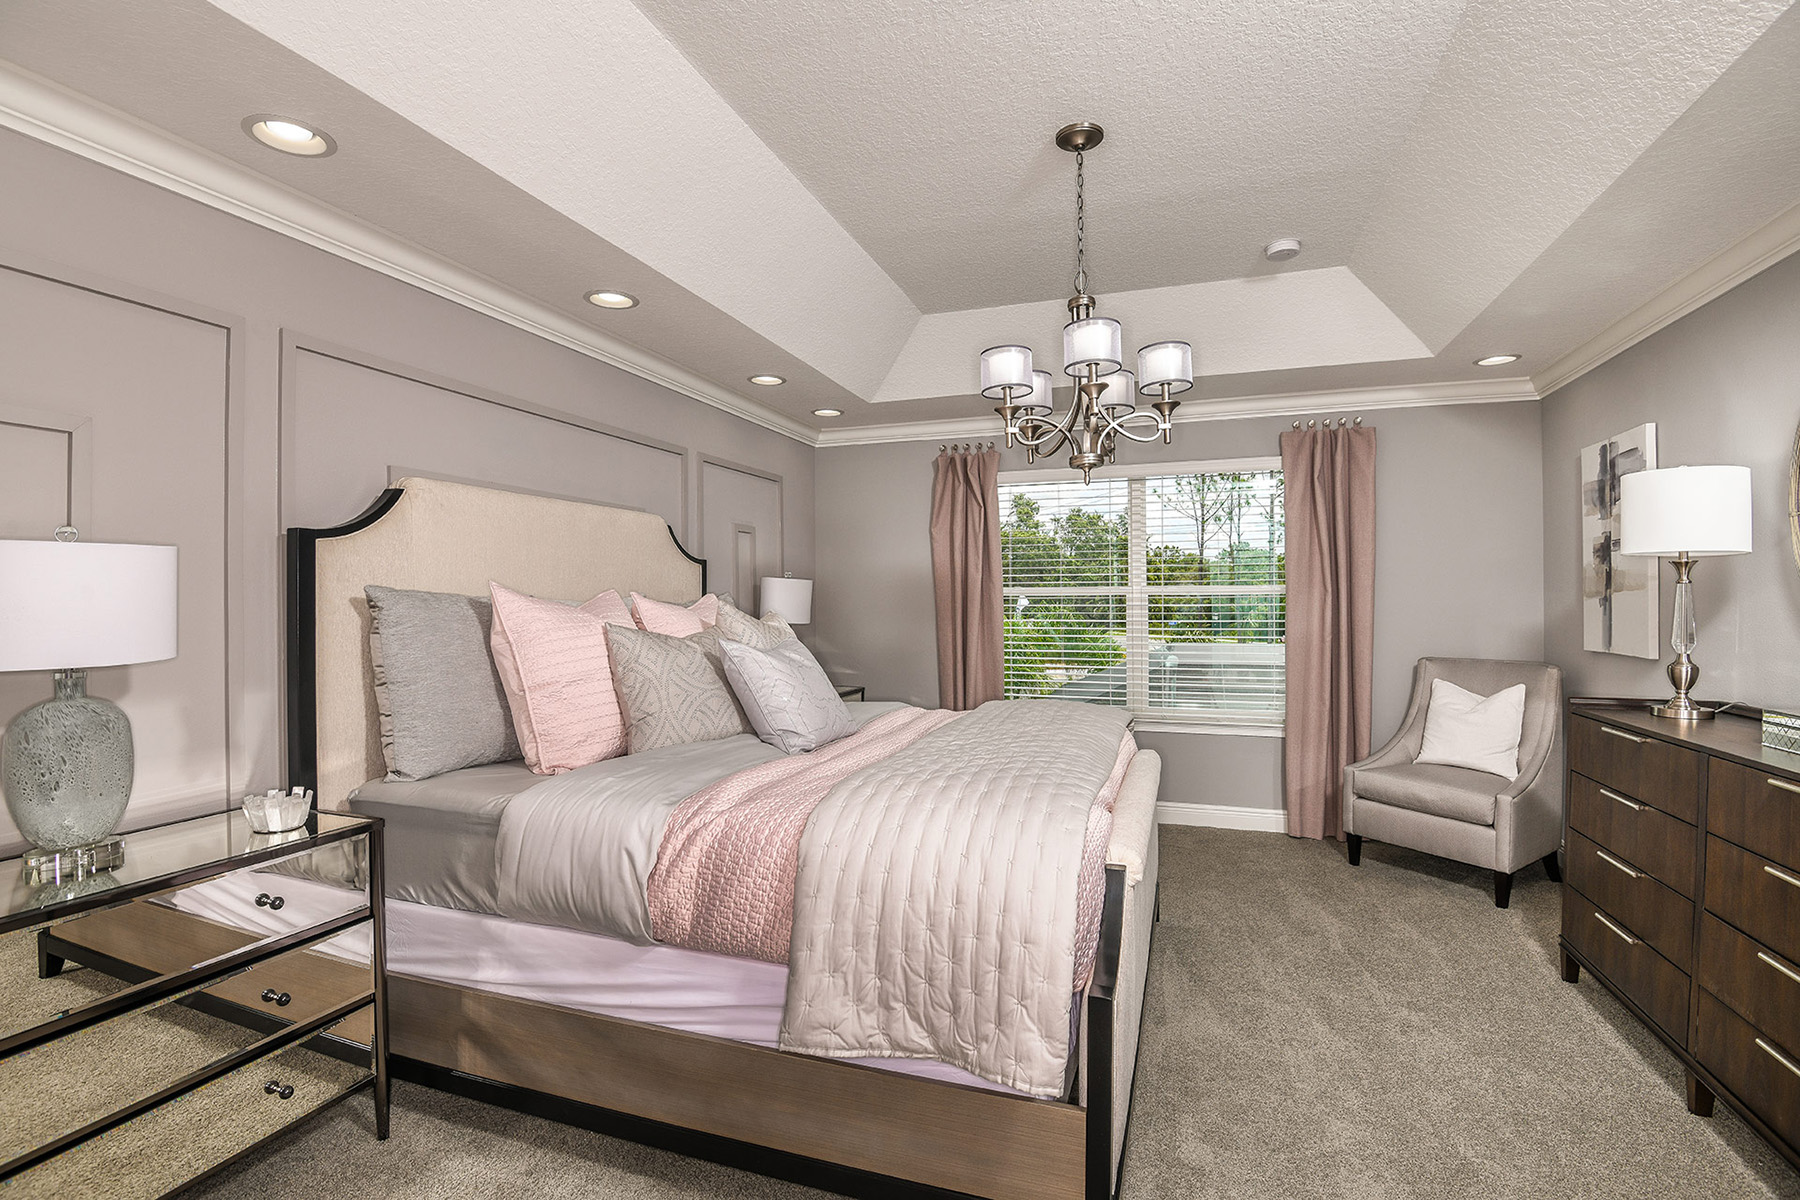 Miramar Plan Bedroom at Boyette Park in Riverview Florida by Mattamy Homes